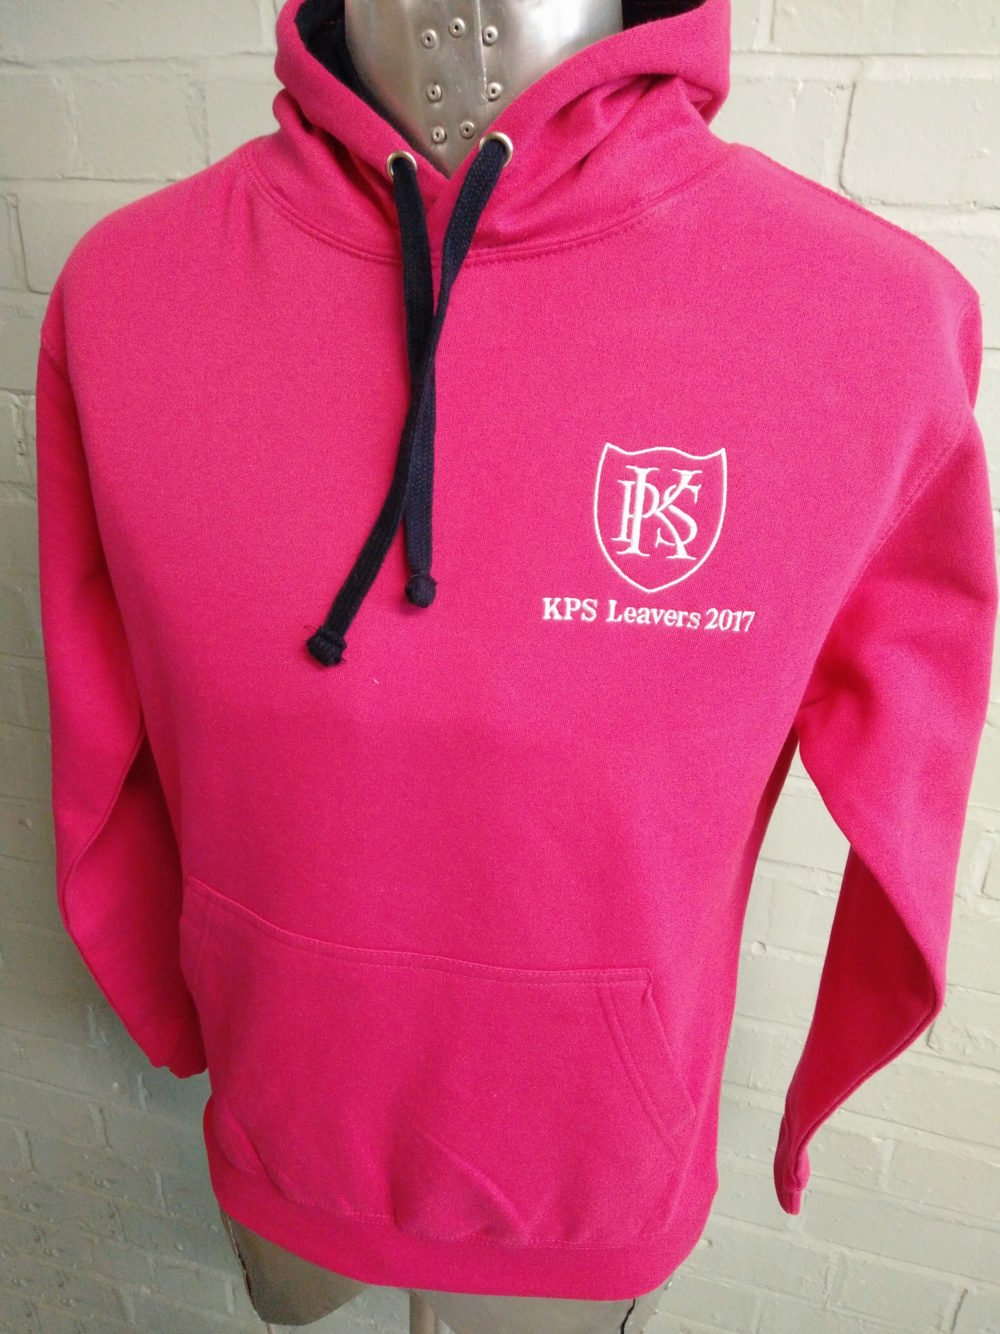 KPS Leavers 2017 Pink Hoodies